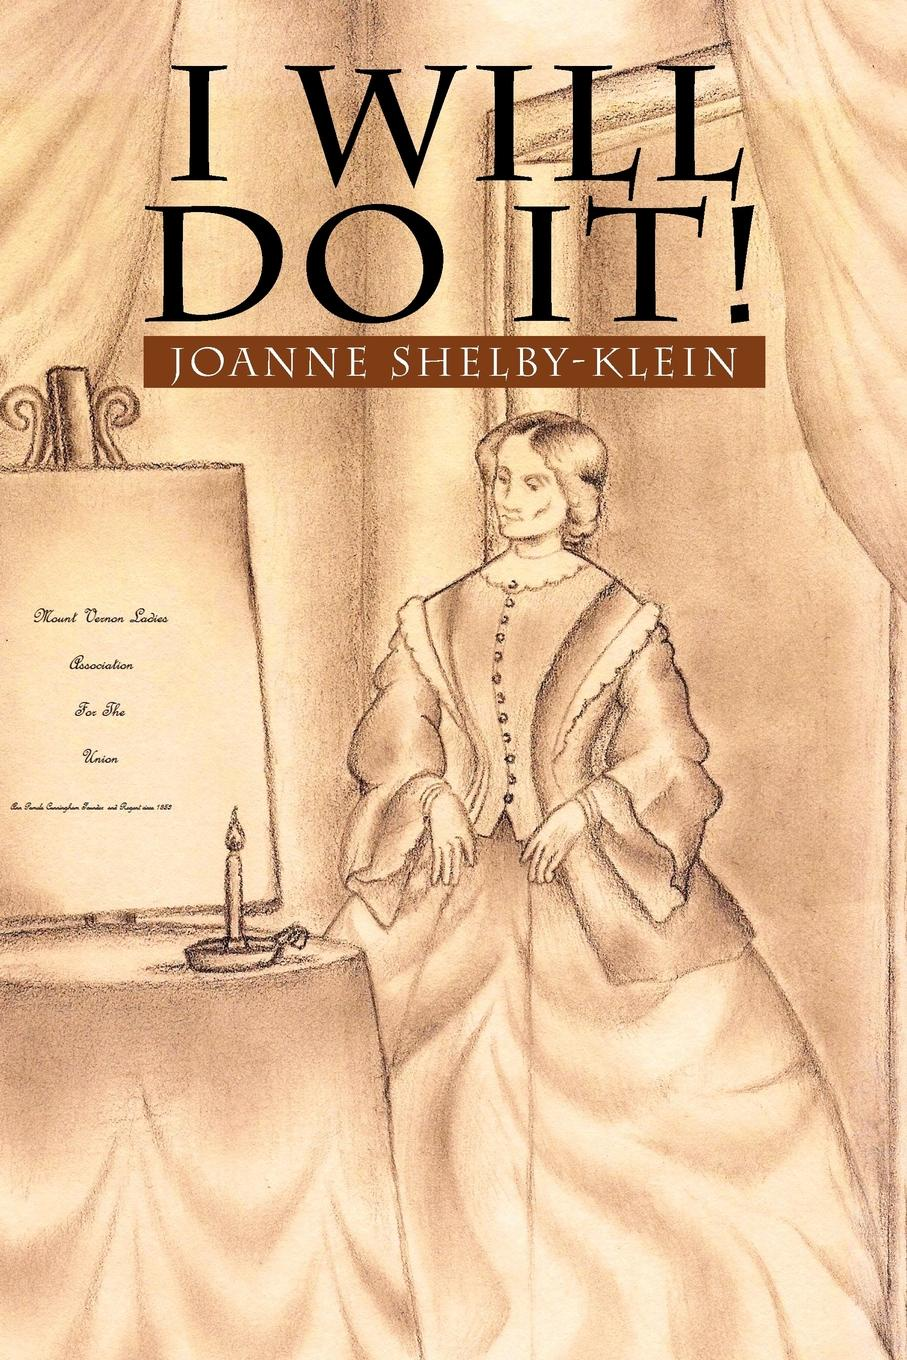 Joanne Shelby-Klein I Will Do It! do i kneel or do i bow